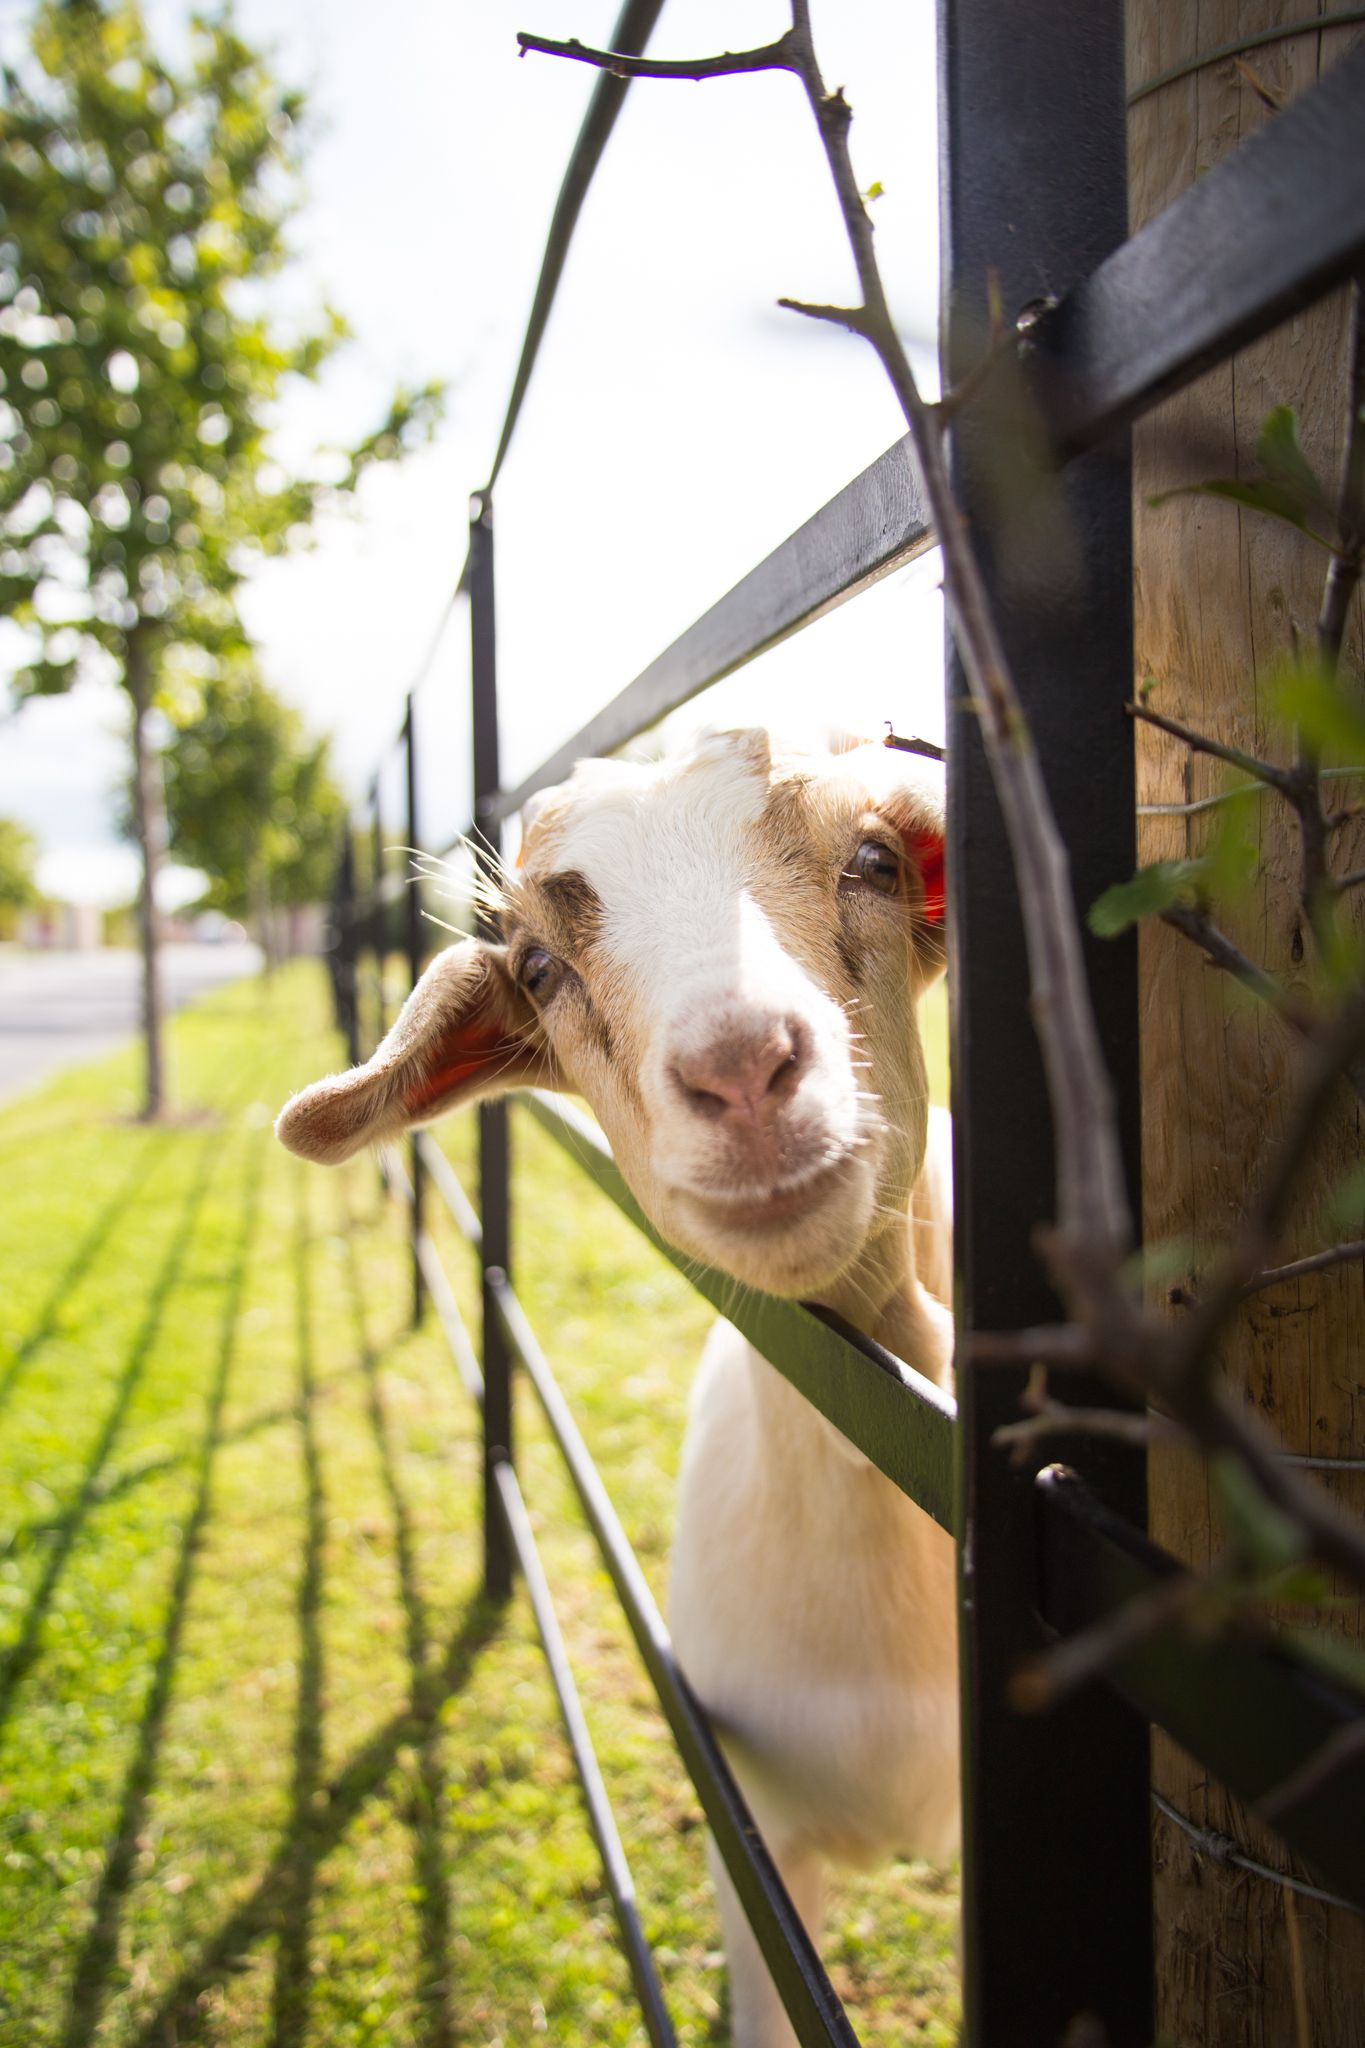 Billy the goat at Airfield Estate